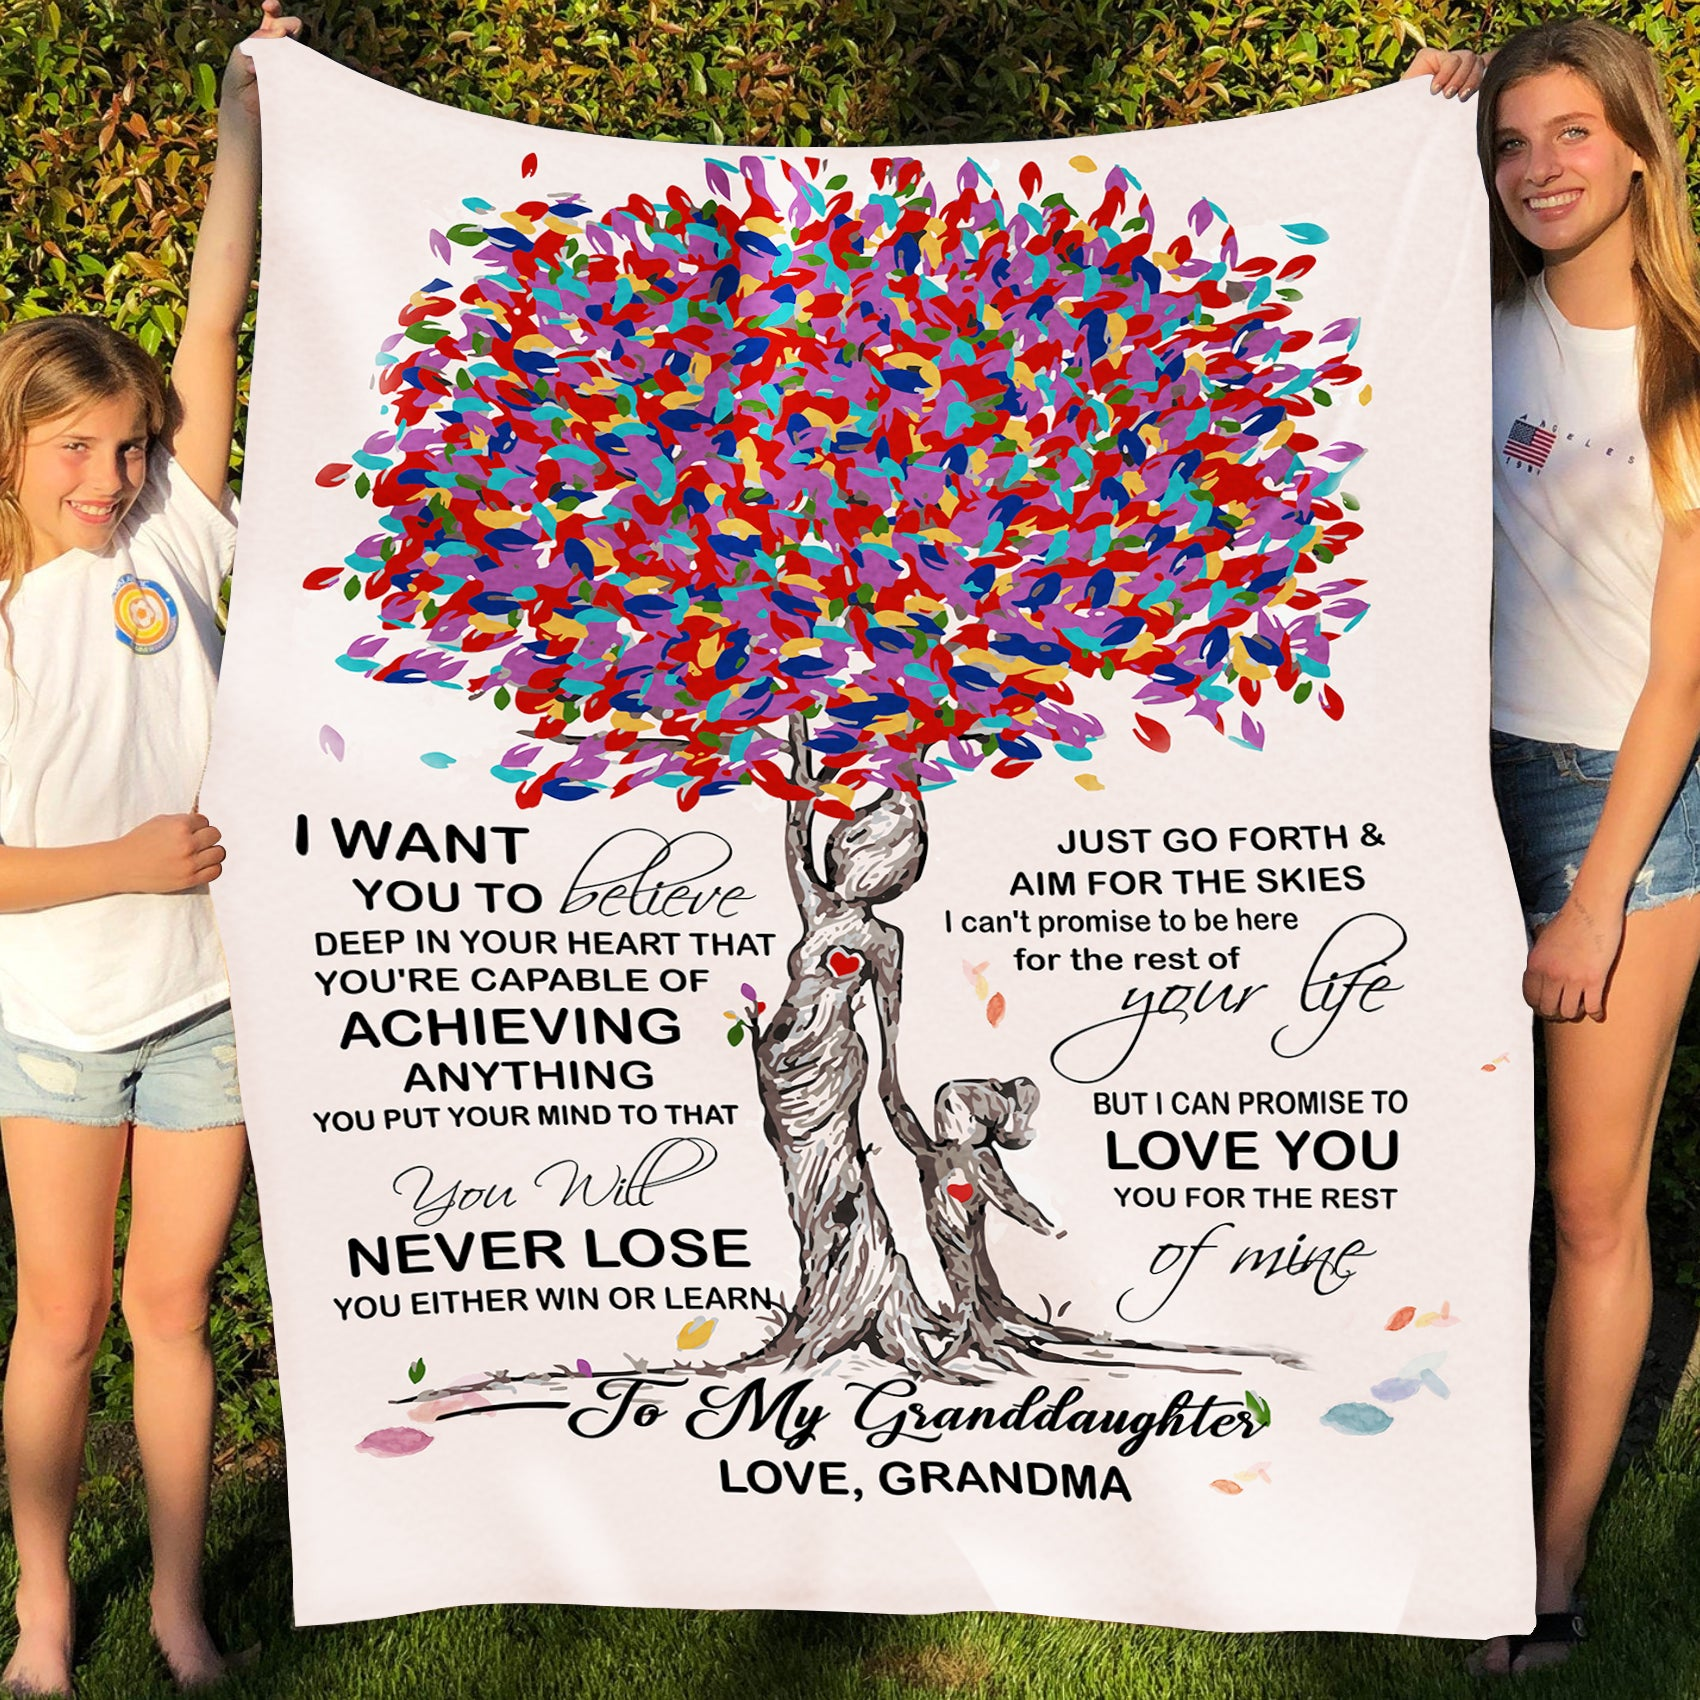 To my granddaughter fleece blanket, never lose blanket - Gift for granddaughter - Birthday gifts, blanket with quotes - 226